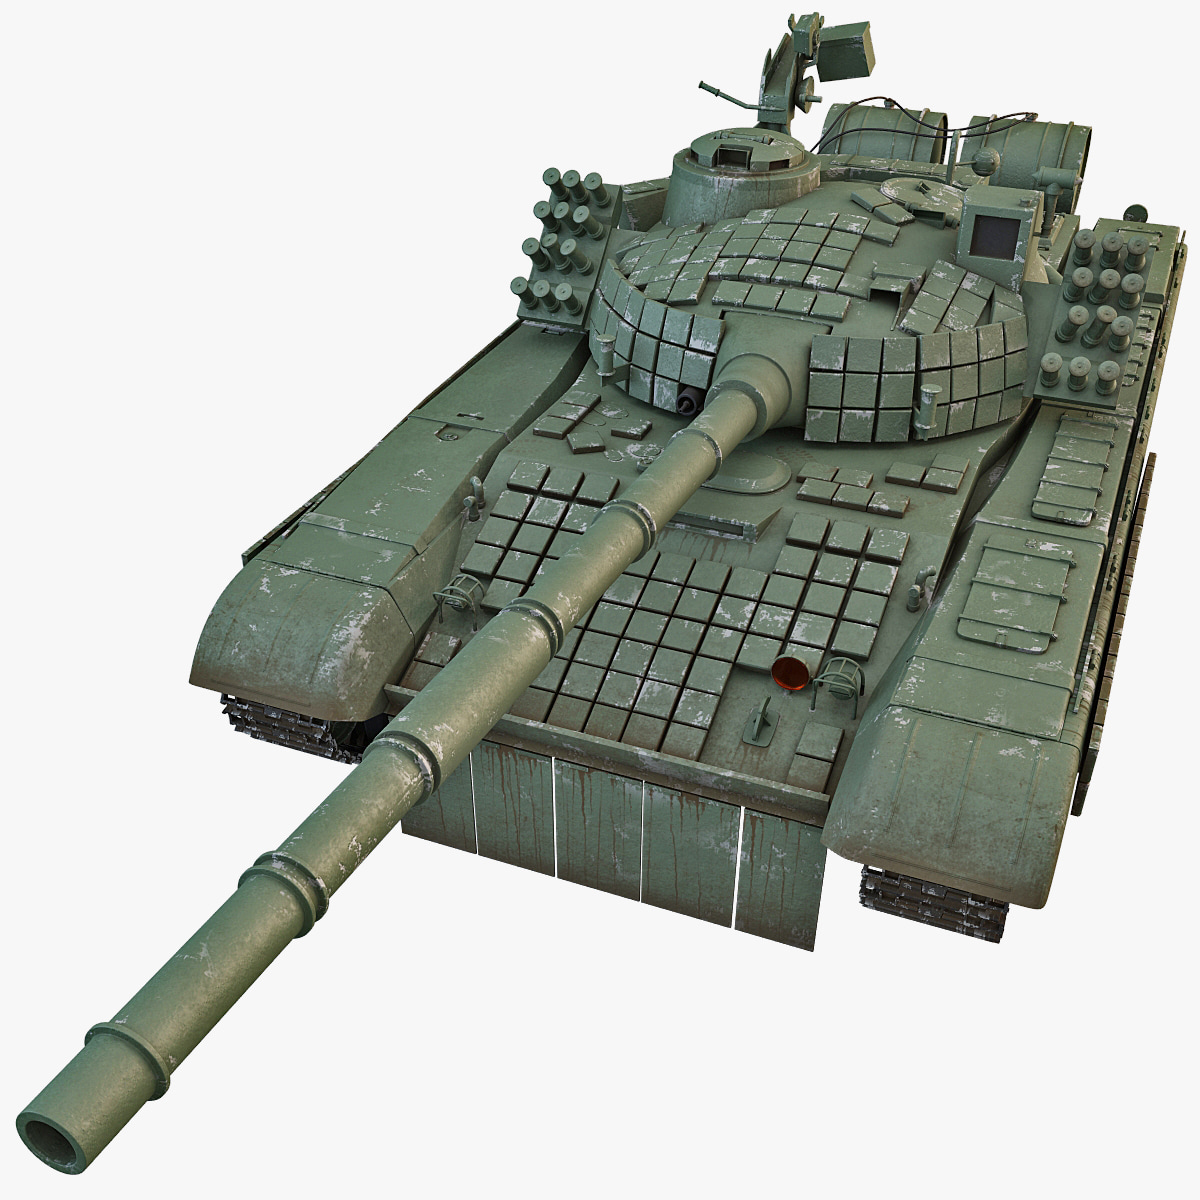 Polish_Main_Battle_Tank_PT-91_Twardy_2_000.jpg